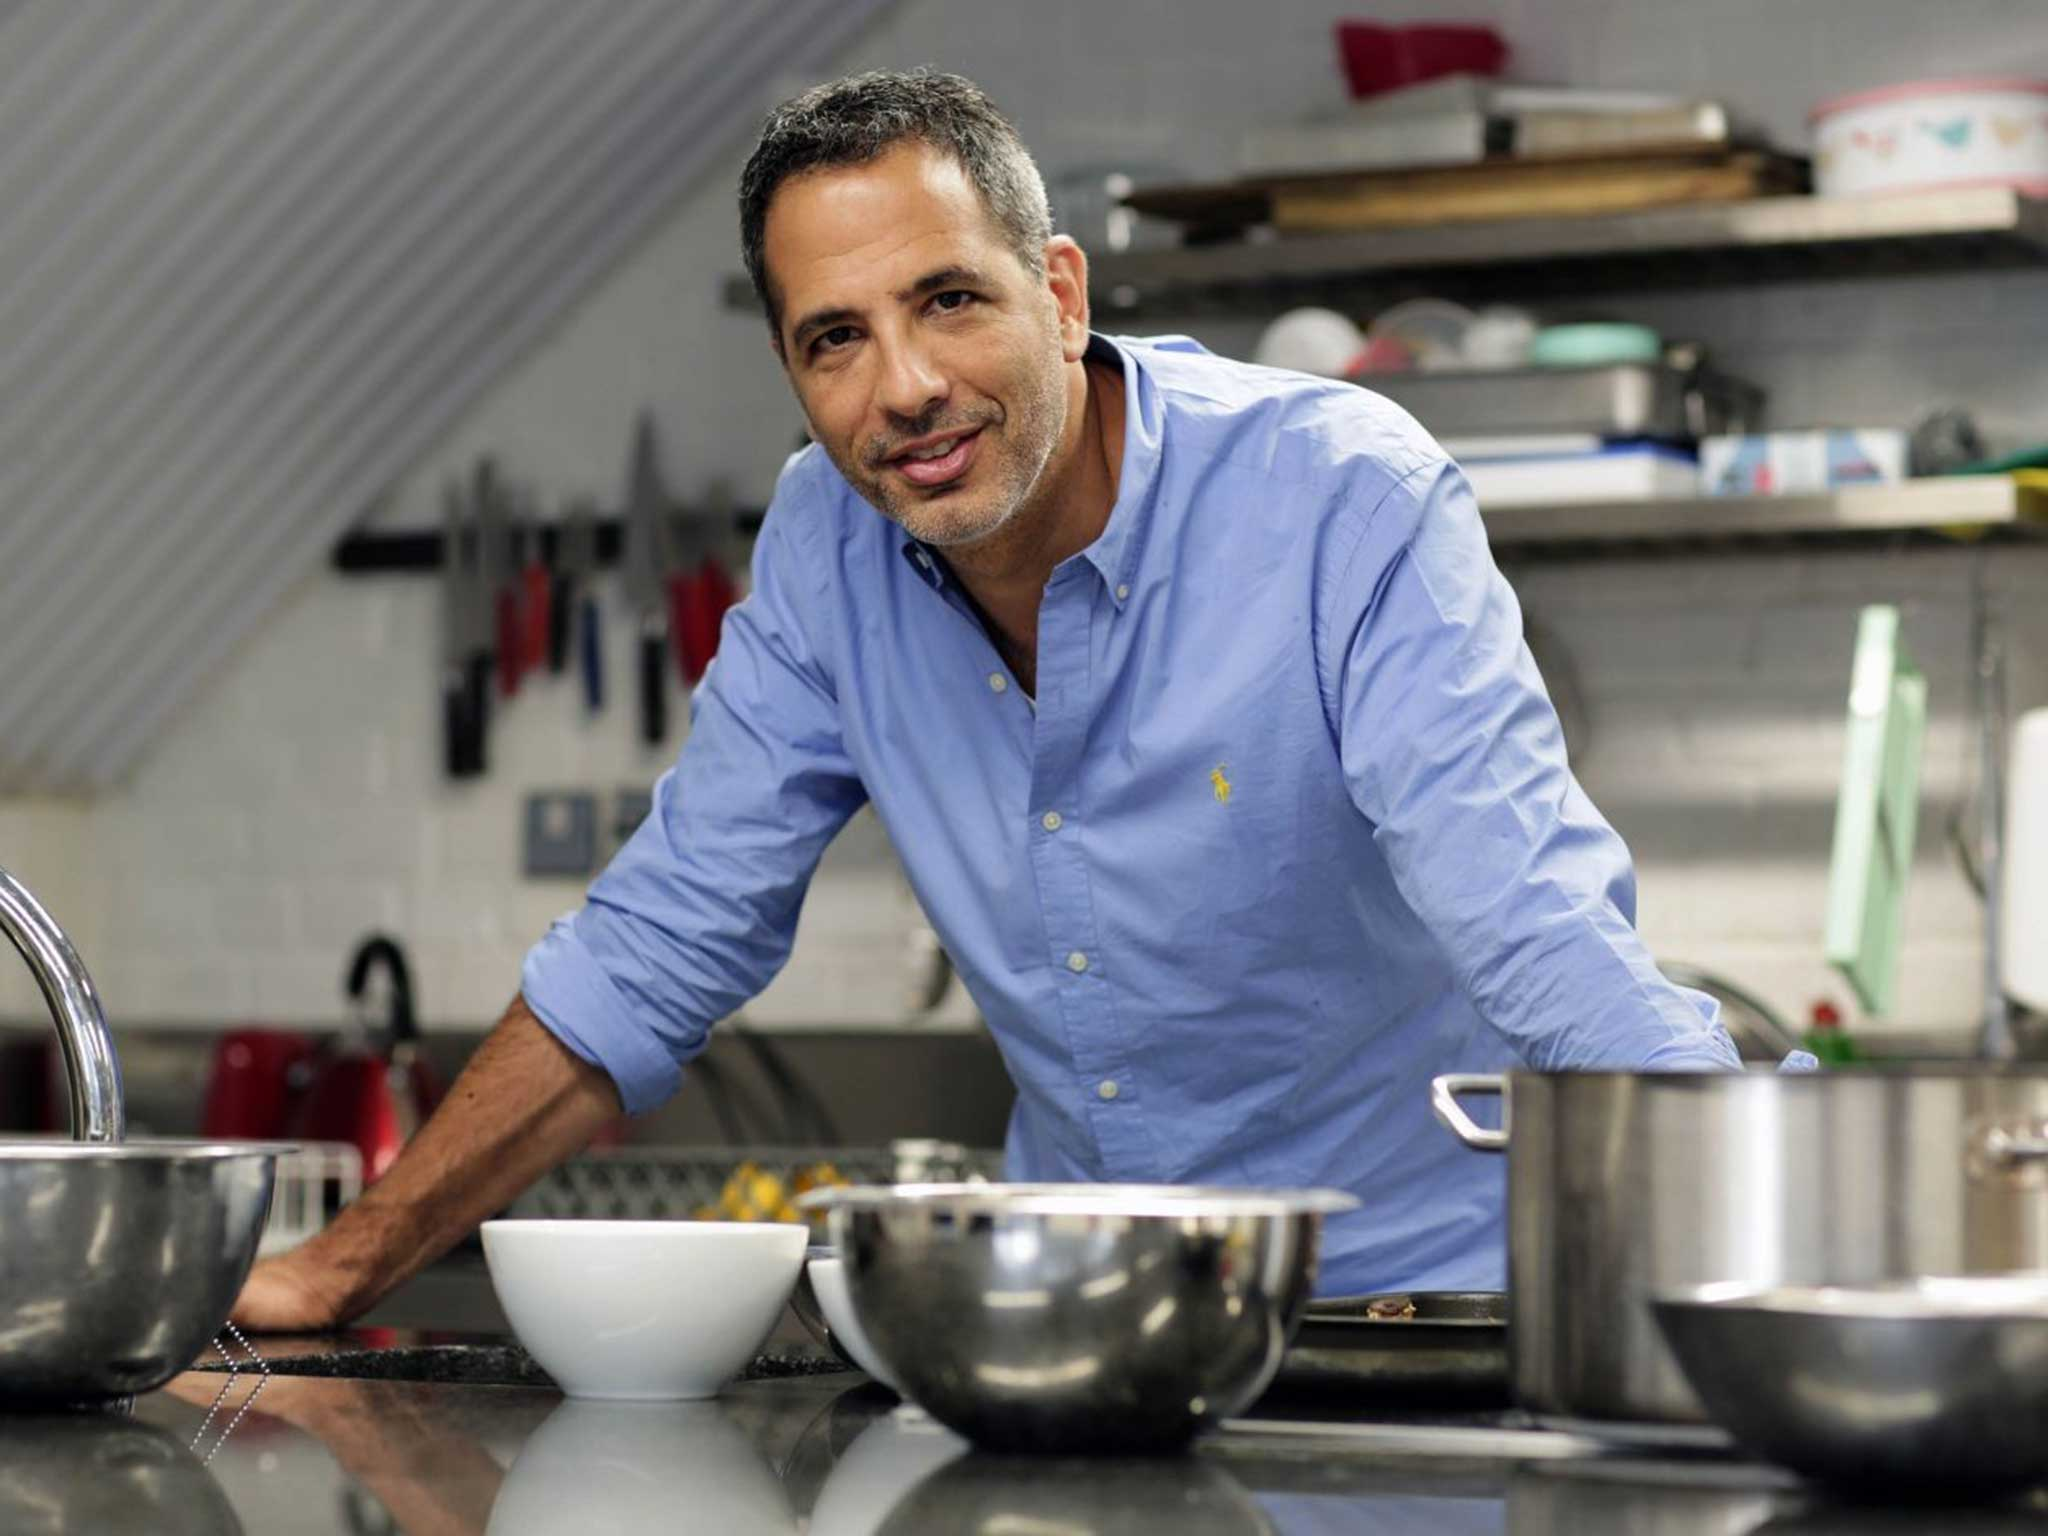 Yotam Ottolenghi Interview: 'Getting Stressed About Food